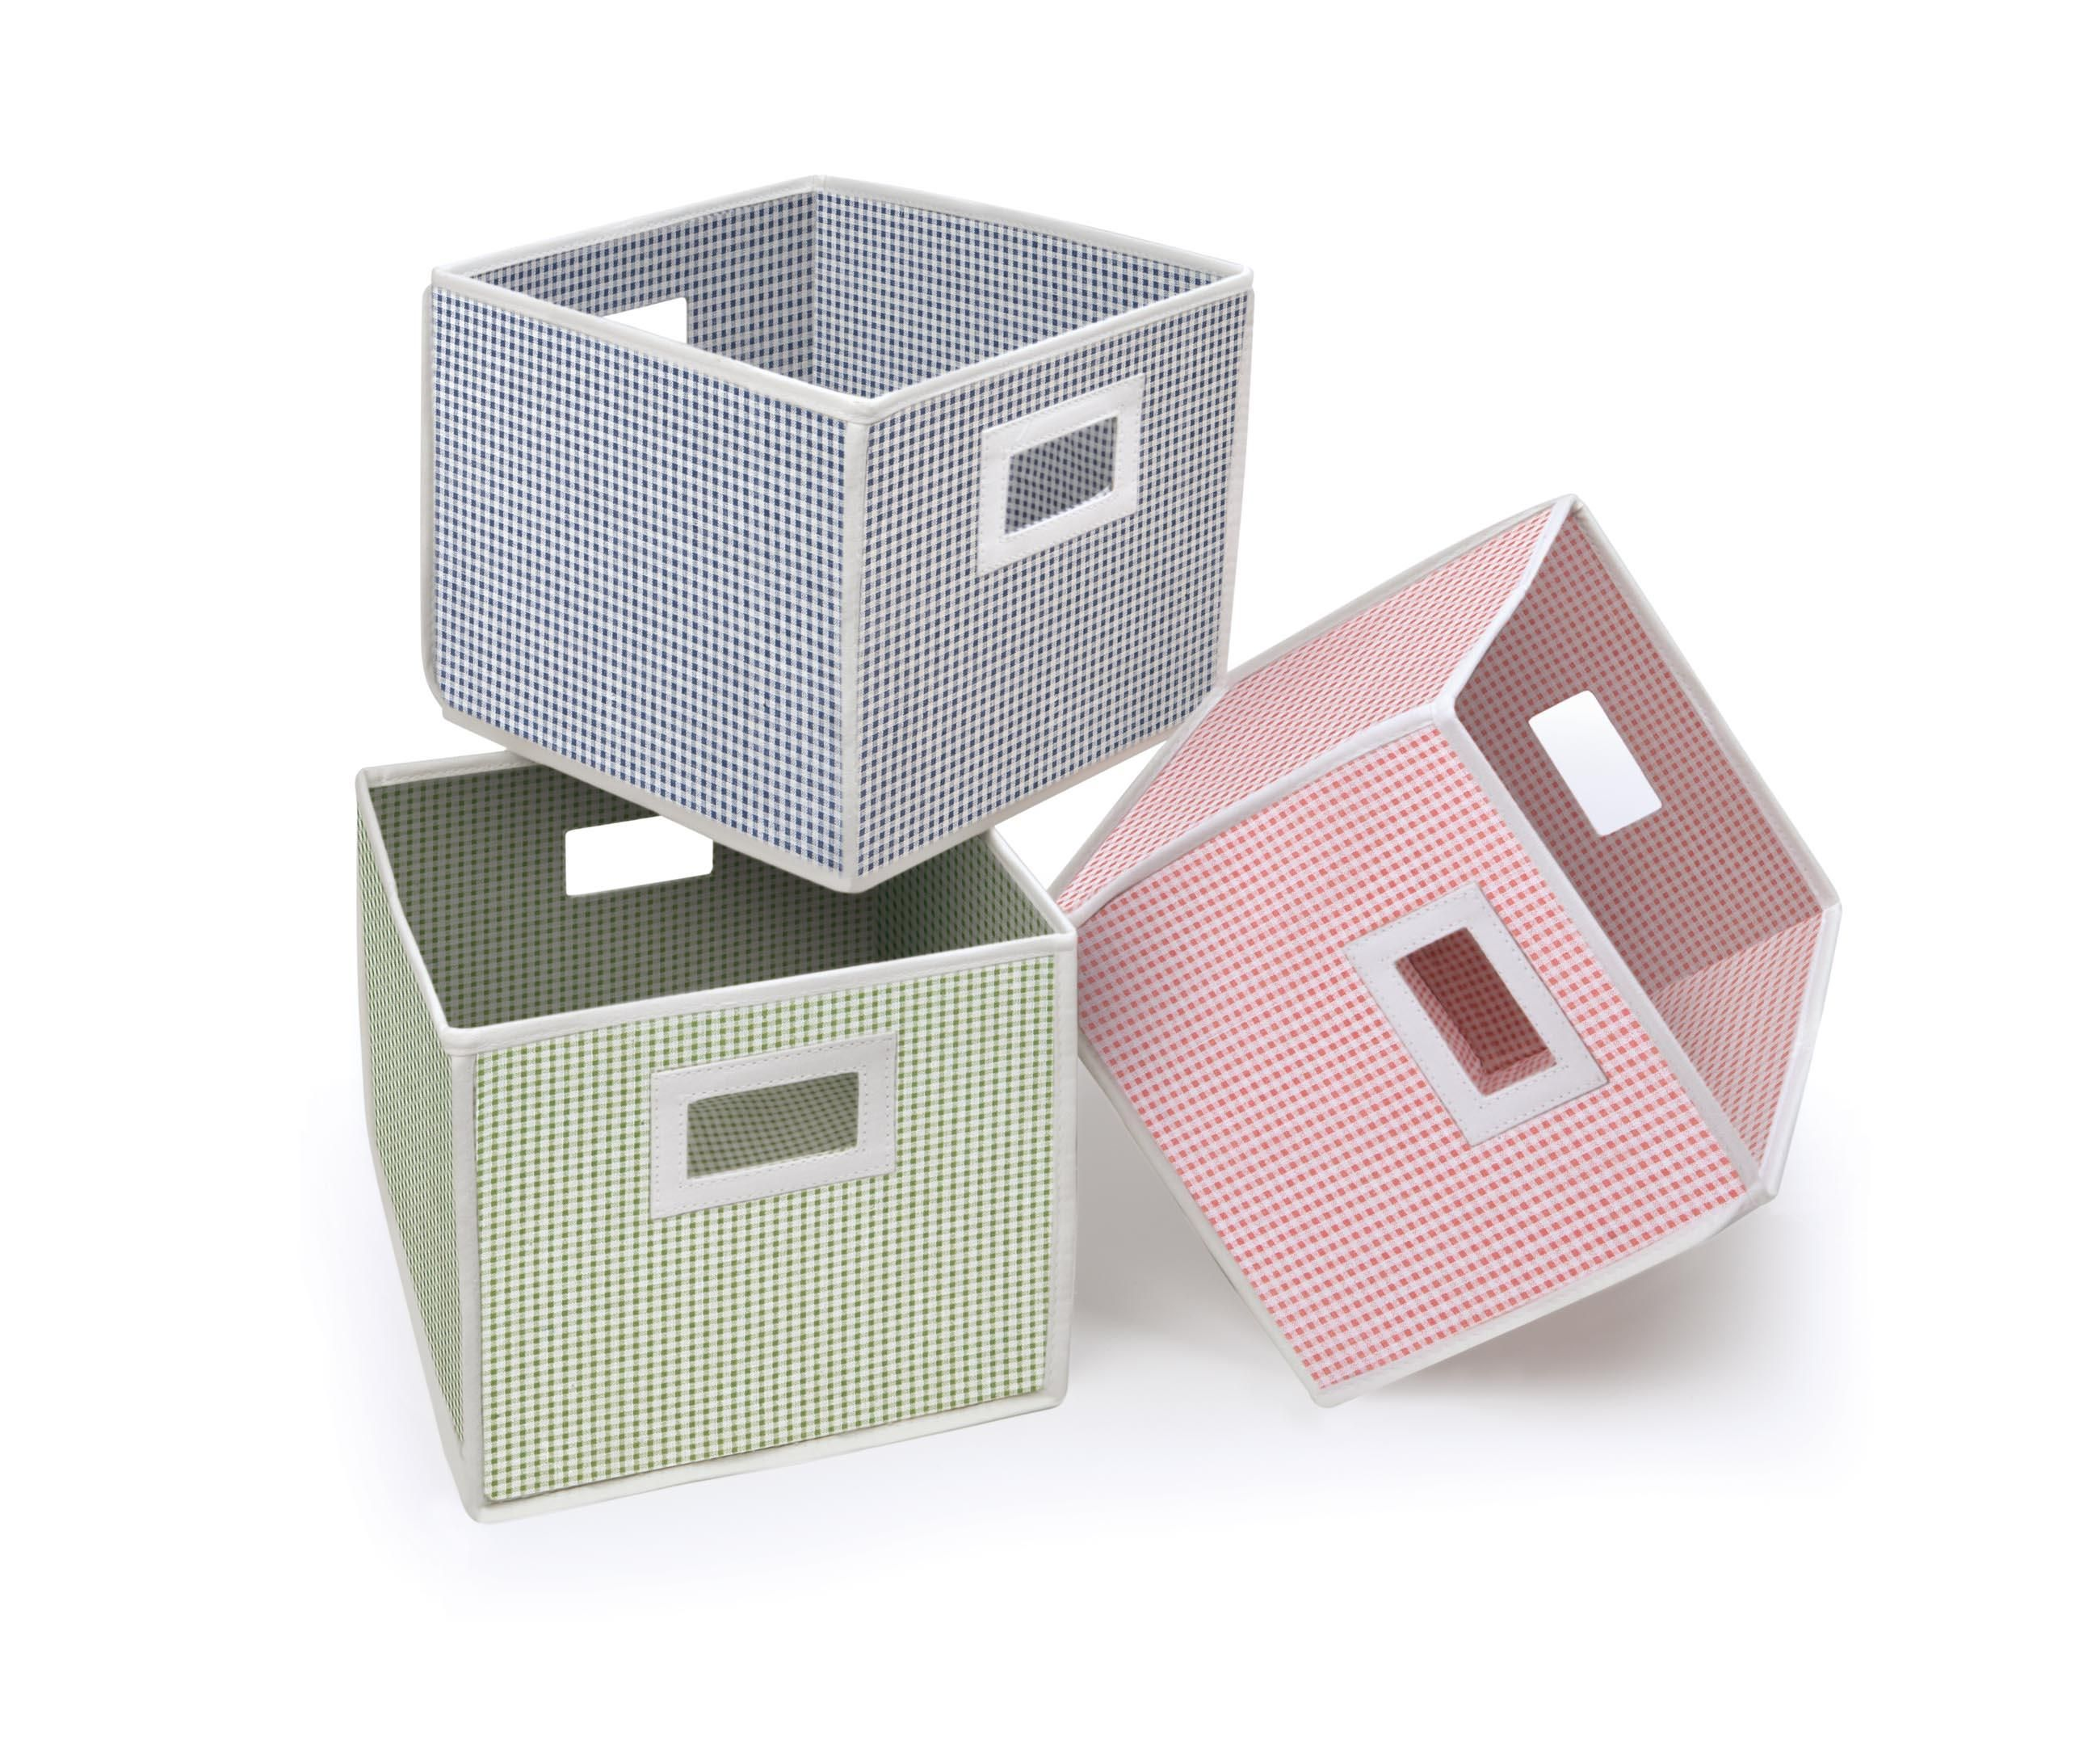 Charmant Adorable Furniture Storage Cubes With Baskets For Your Home Equipment Ideas  : Cool Assorted Colors For Storage Cubes With Baskets Equipped Cut Out  Handle ...